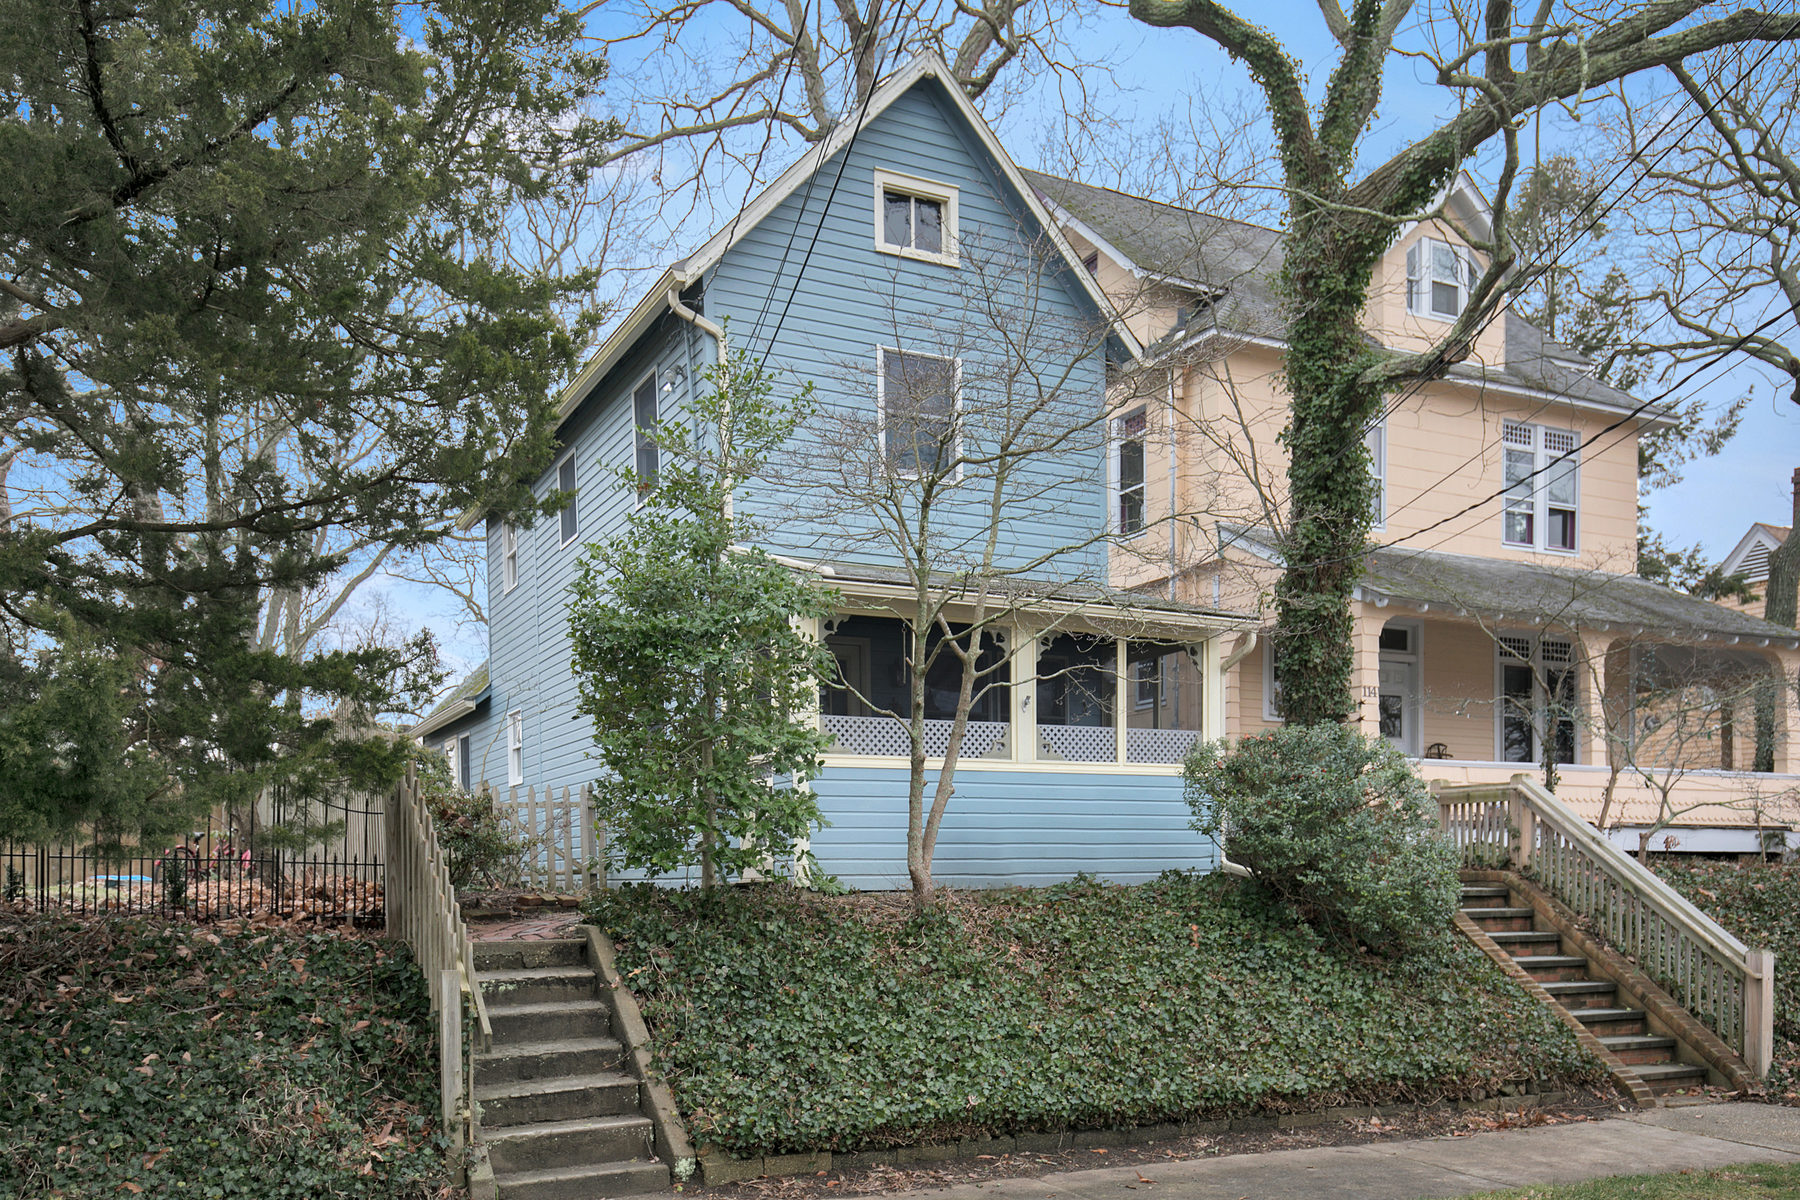 Single Family Home for Sale at Warm And Inviting One-Of-A-Kind Home 116 Ocean Avenue Island Heights, New Jersey 08732 United States